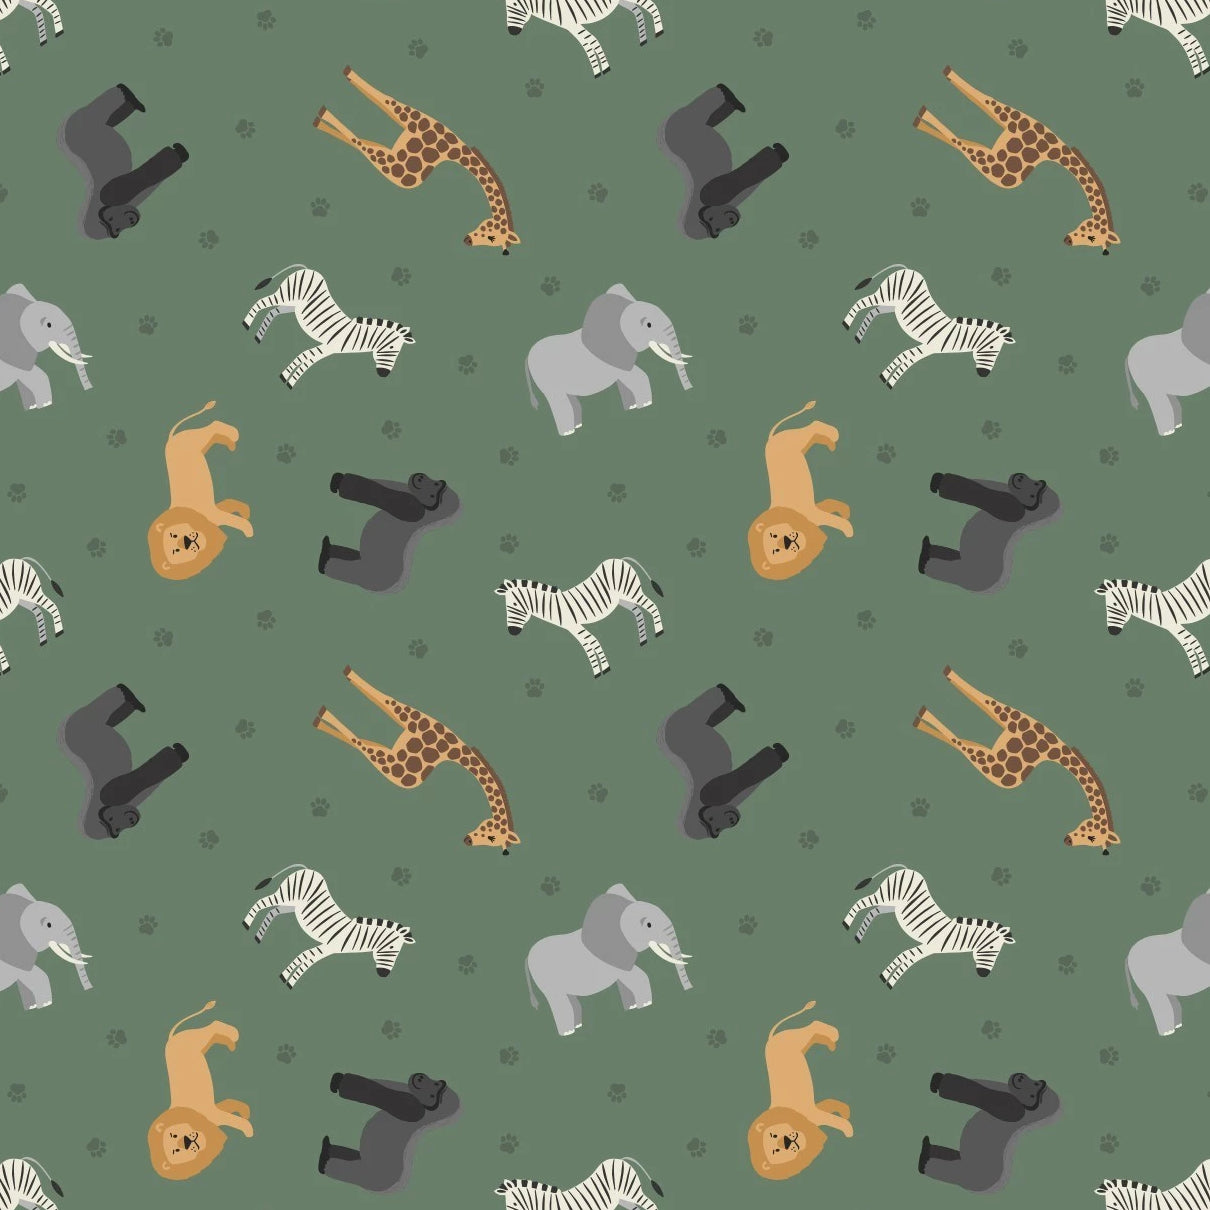 Small Things... World Animals - Africa Fabric - Trapunto